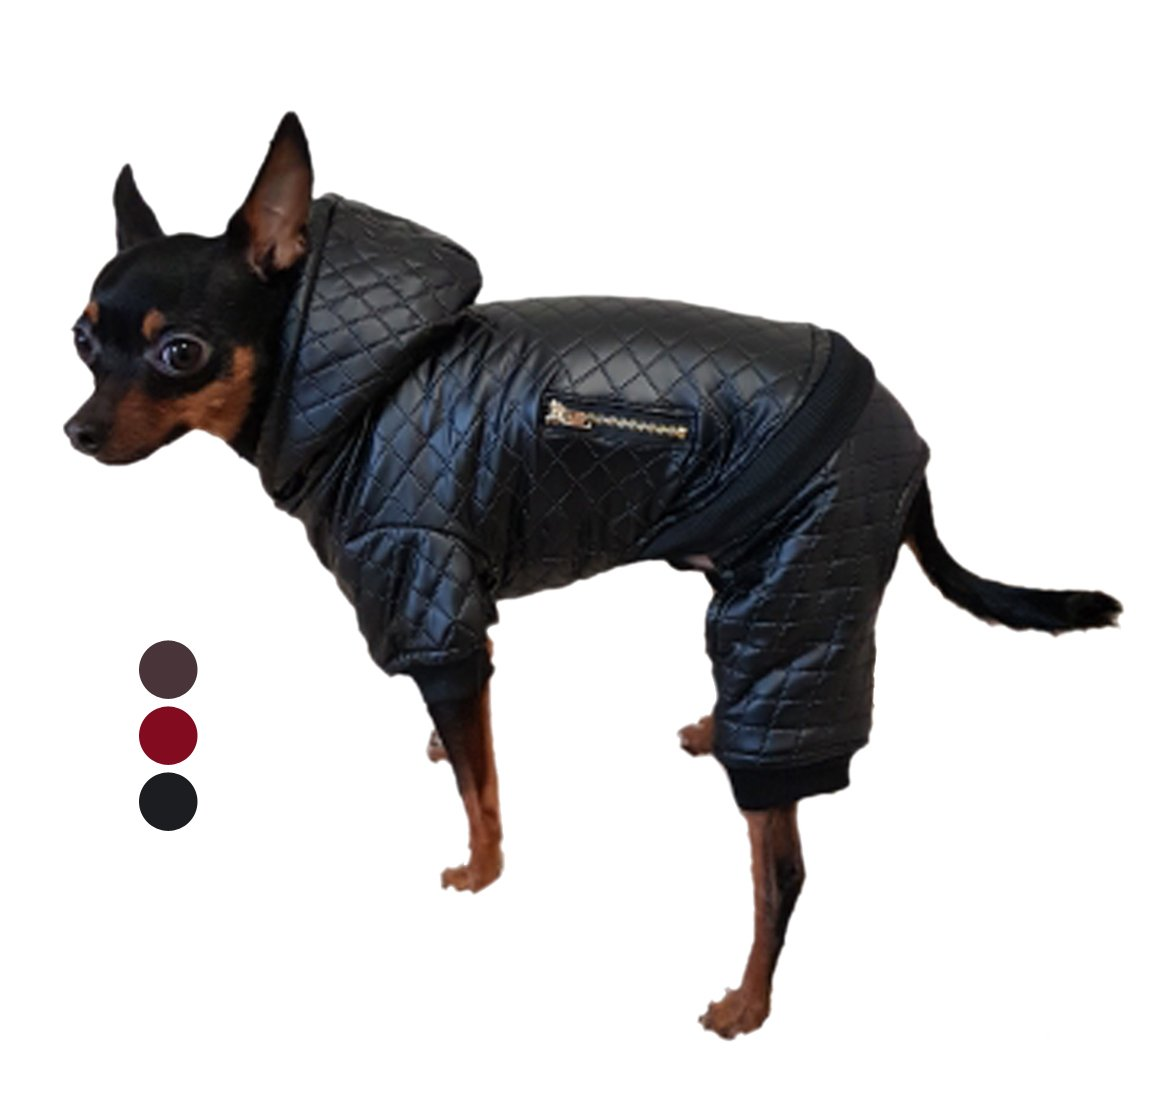 GabeFish Pet Pu Leather Style Detachable Coats For Small Dogs Animals Fashion Two Piece Four Legs Snap Button Hood Jacket Black Medium